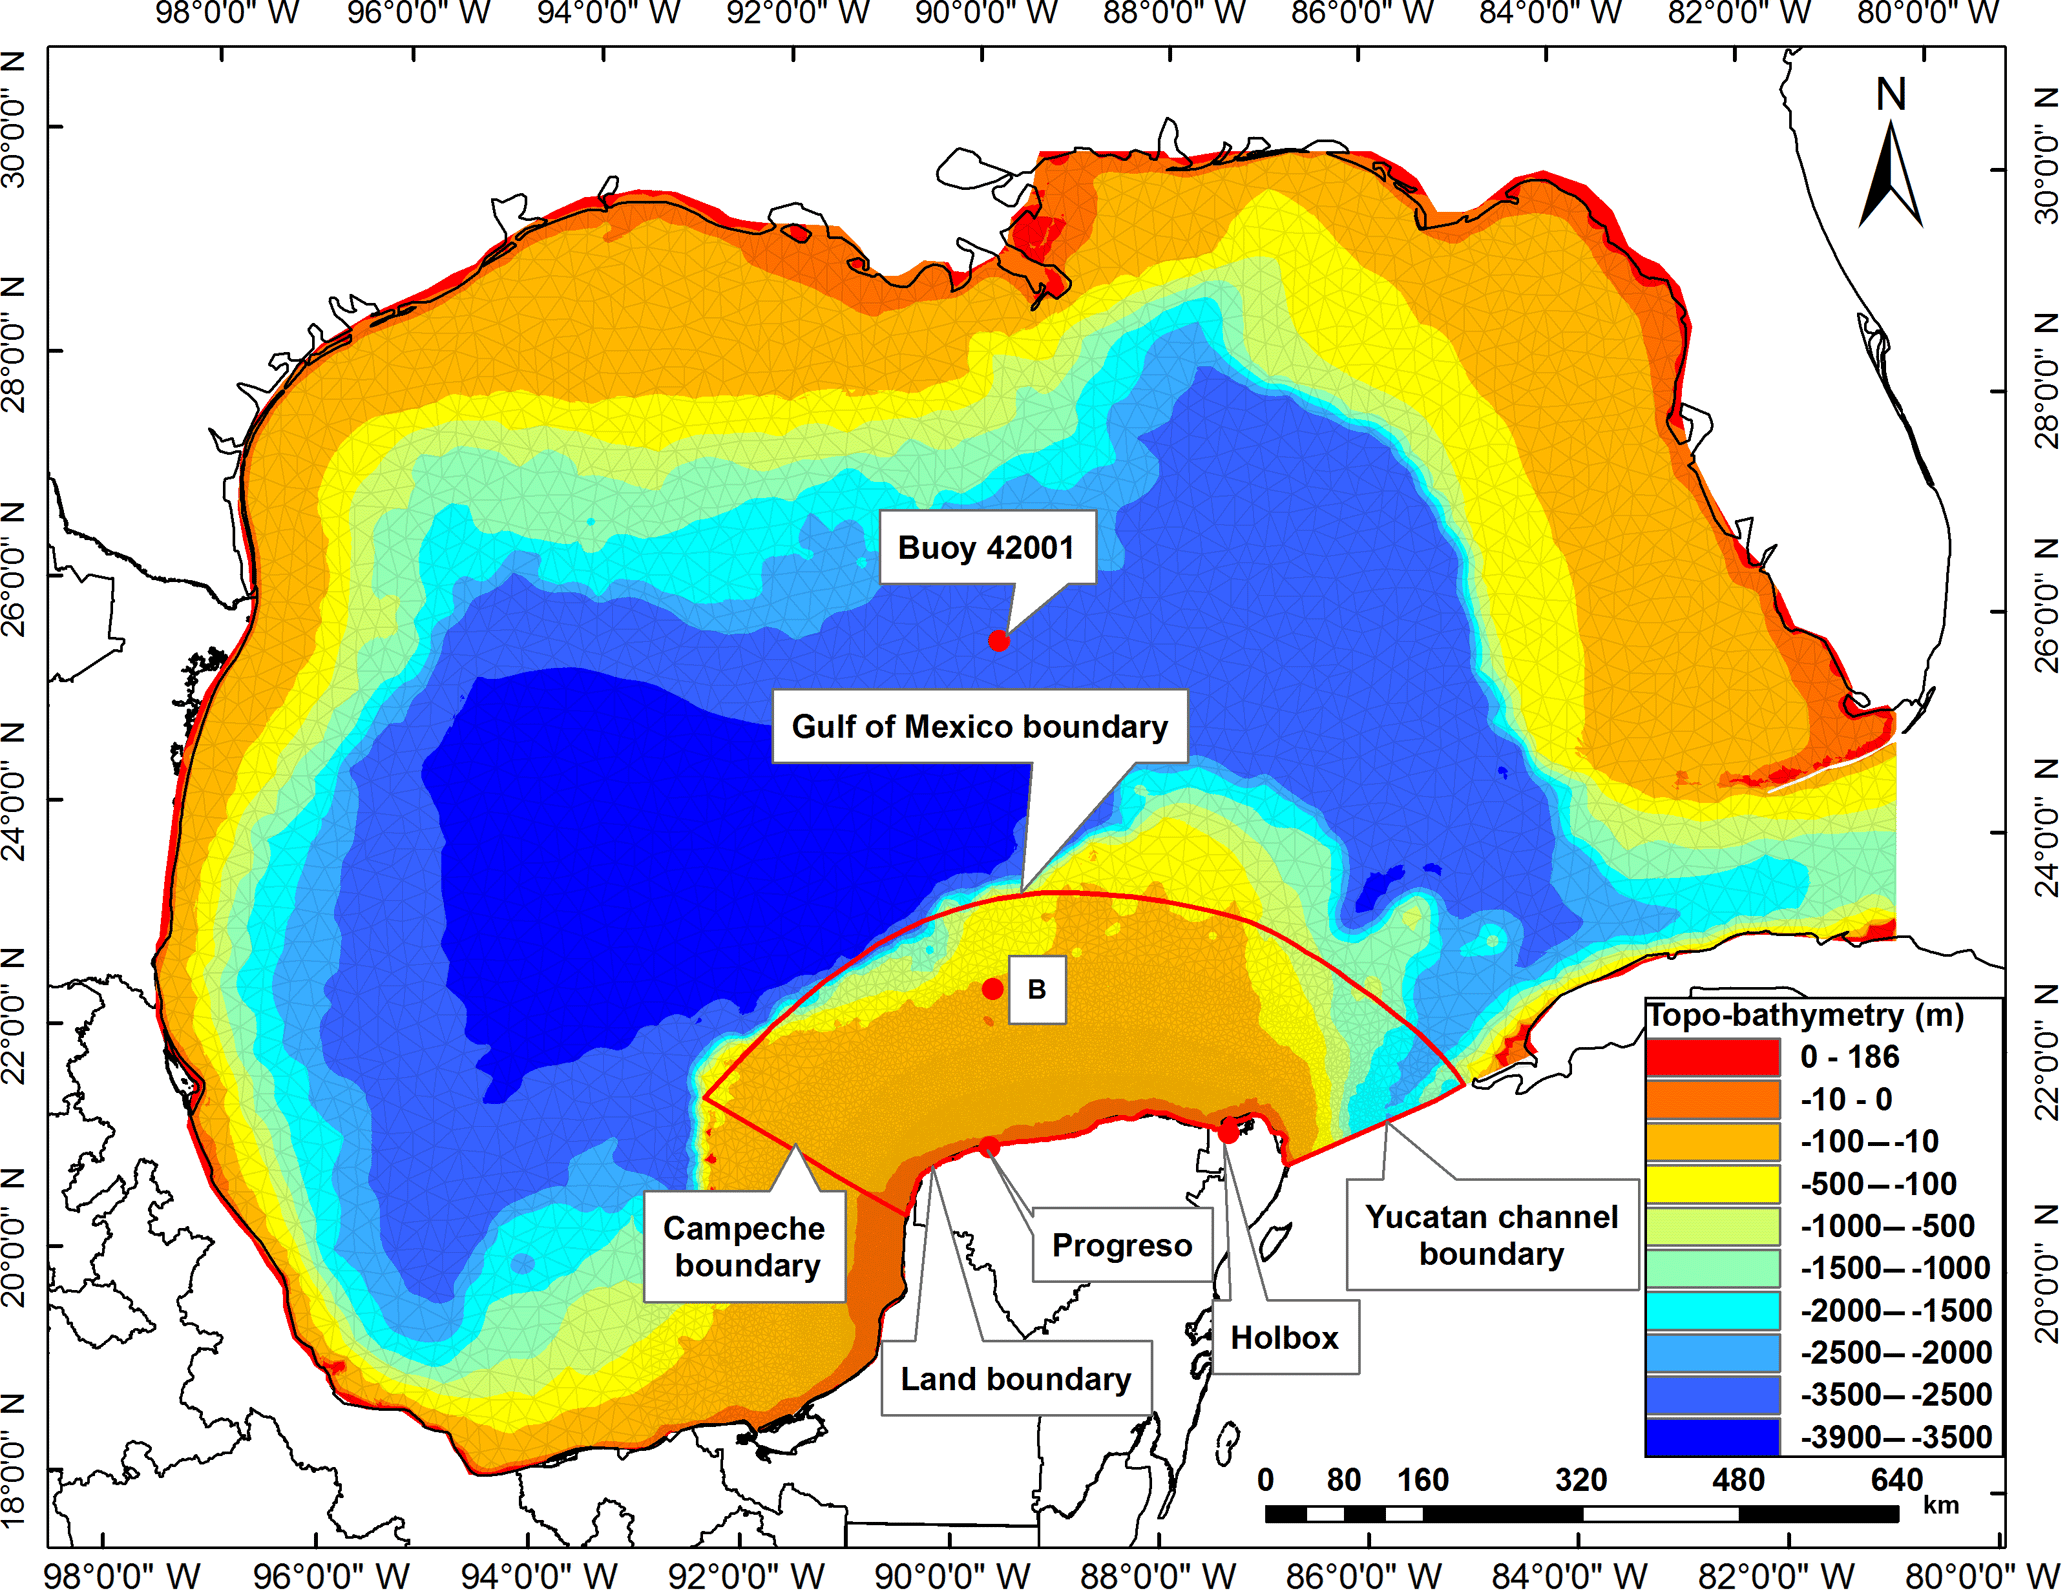 NHESS - Assessment of coastal flooding and associated hydrodynamic